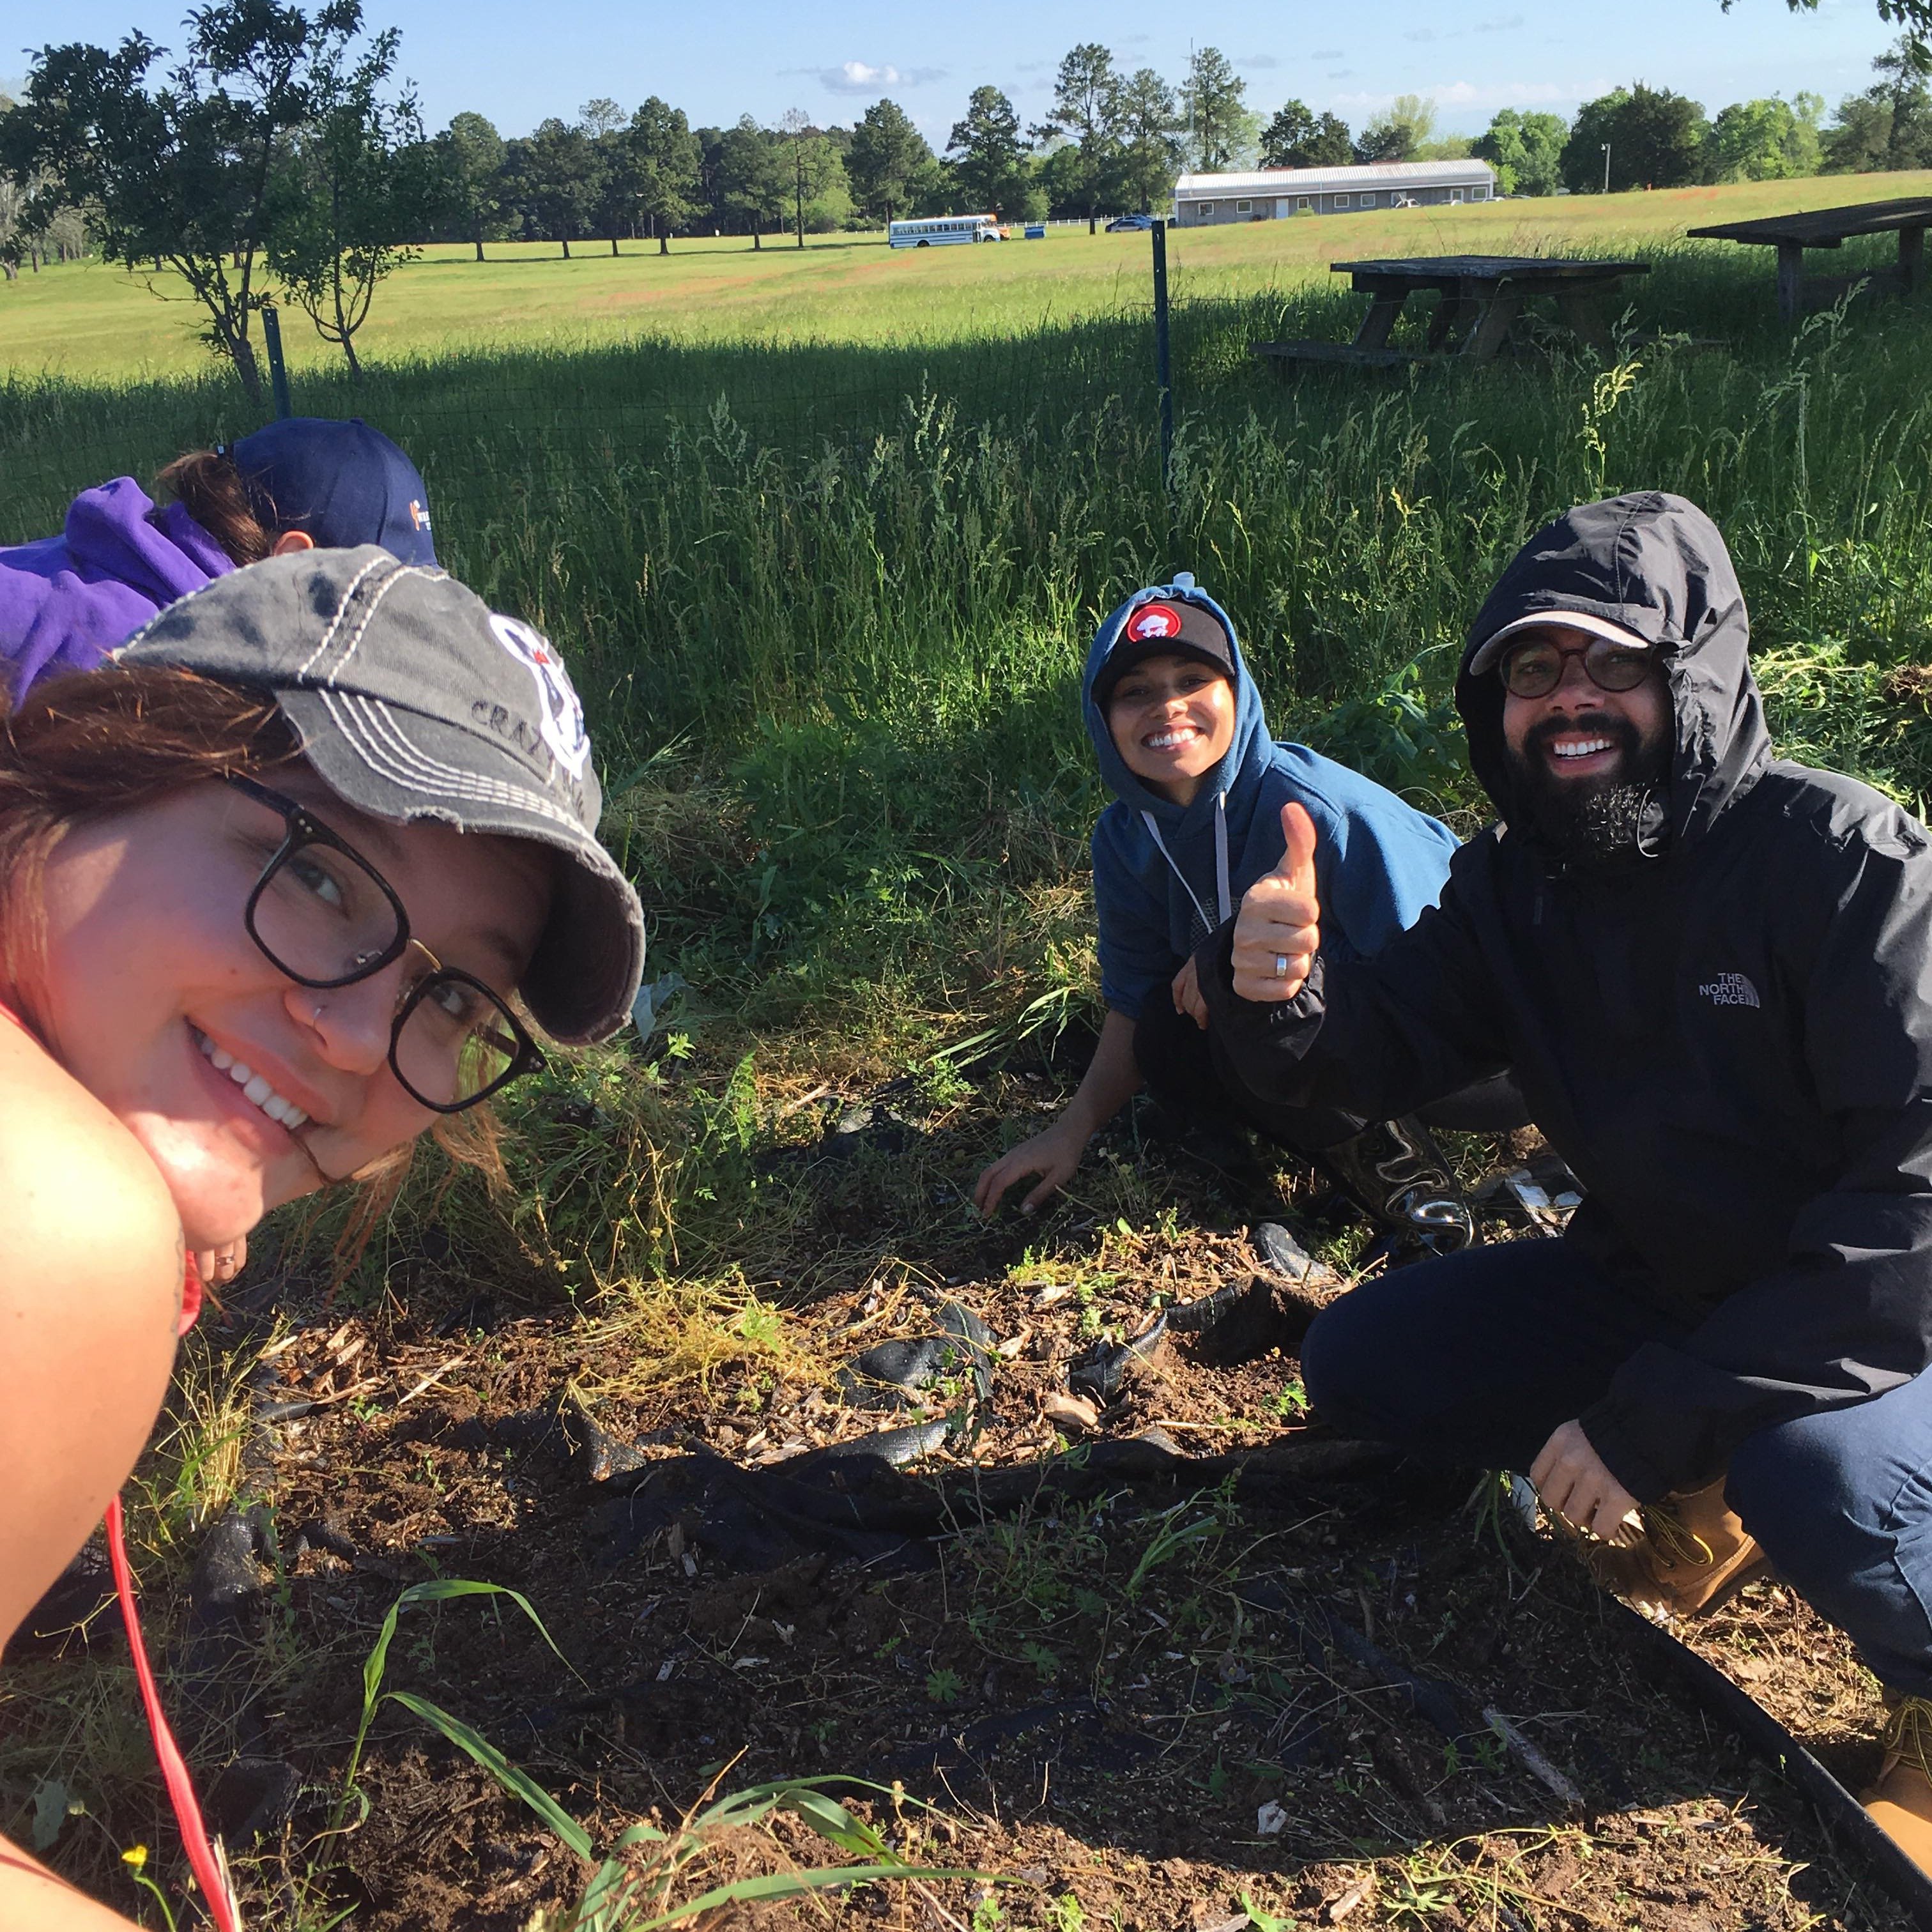 ywam-tyler-multicultural-dts-missionary-agtech